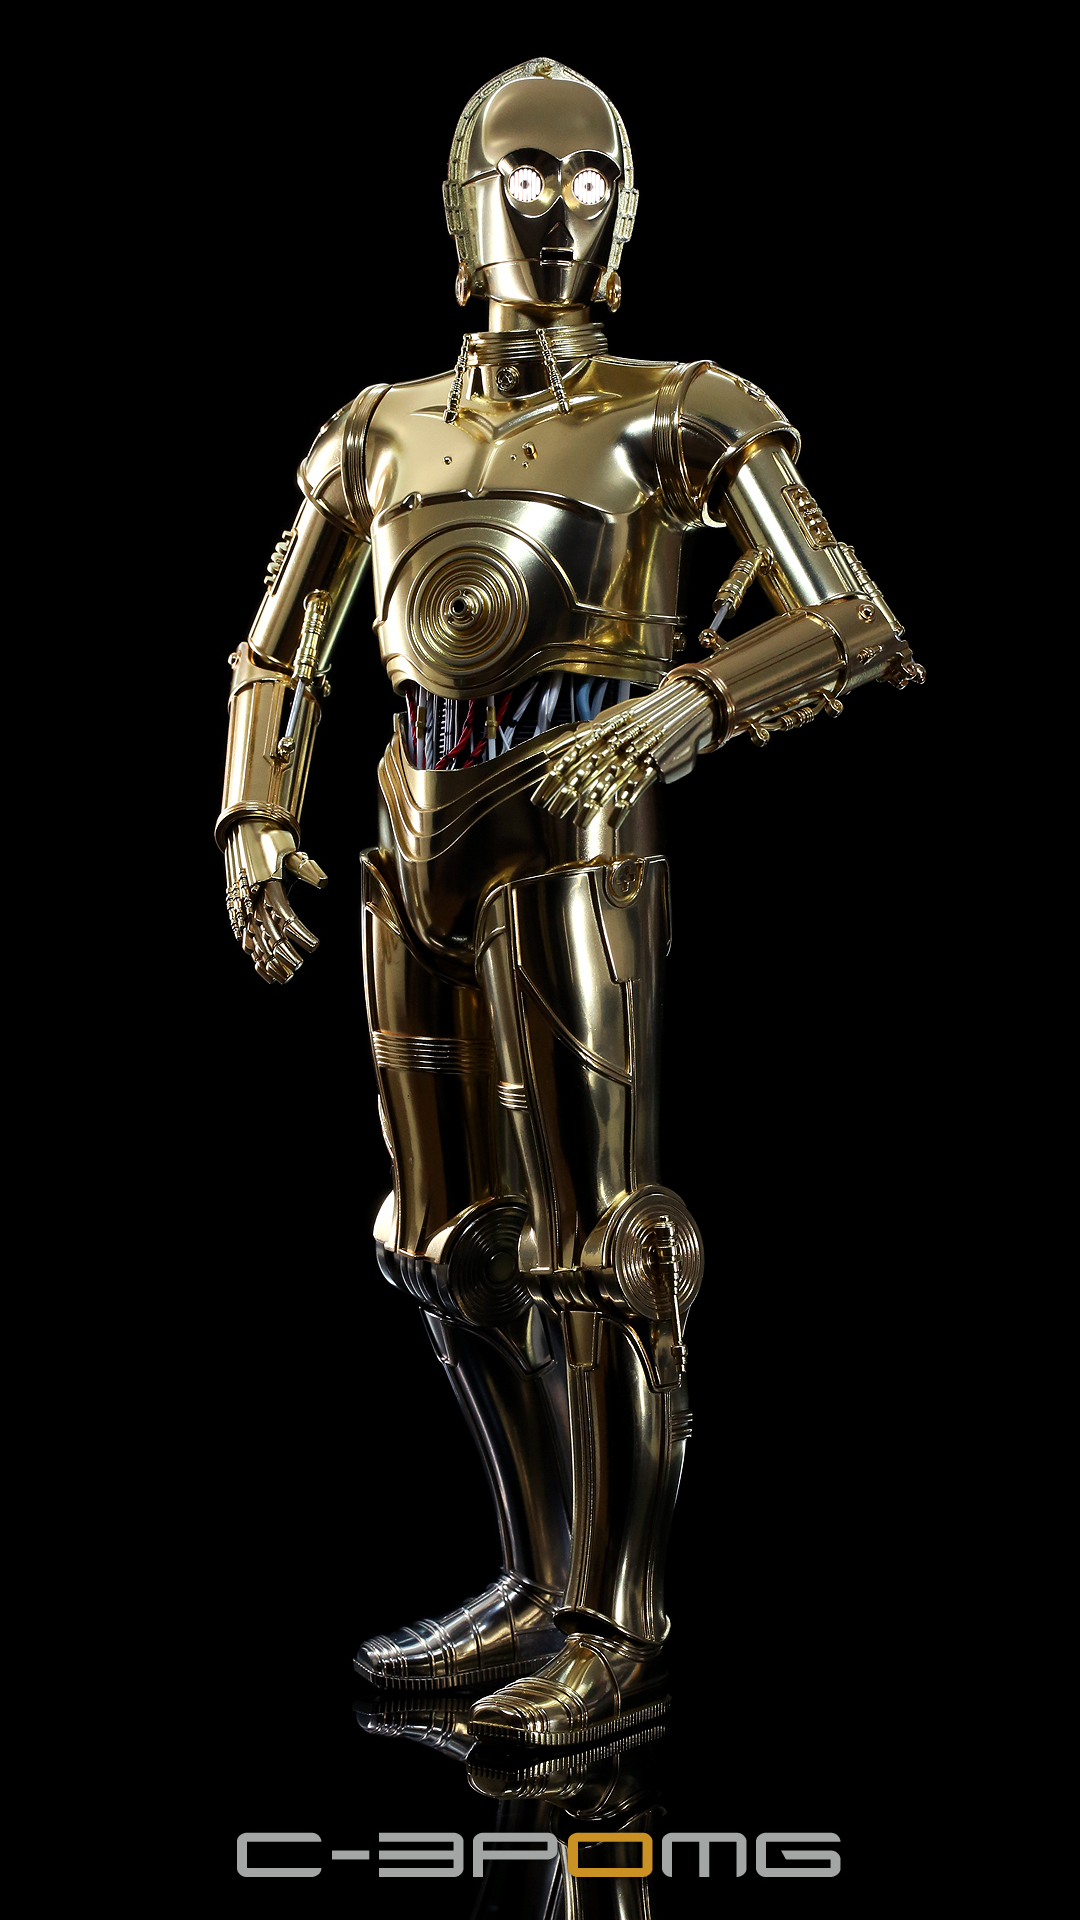 [Bandai] Star Wars: C-3PO - Perfect Model 1/6 scale - LANÇADO!!! - Página 2 C-3PO1011-1_zpsfceb2028